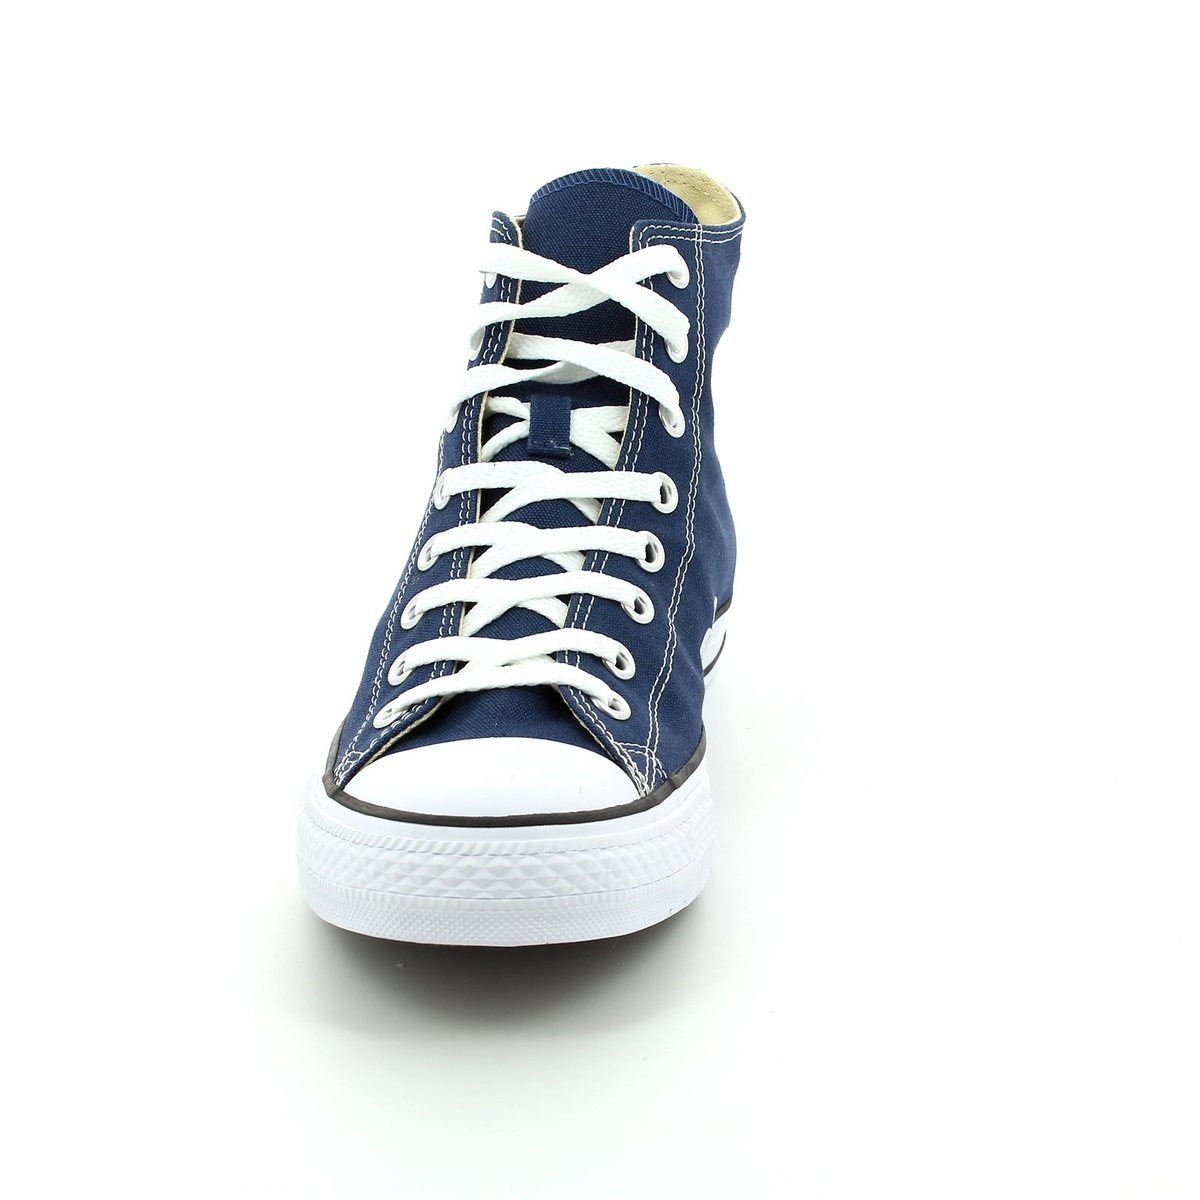 cce4459c6625 Converse M9622C All Star HI tops Navy canvas trainers